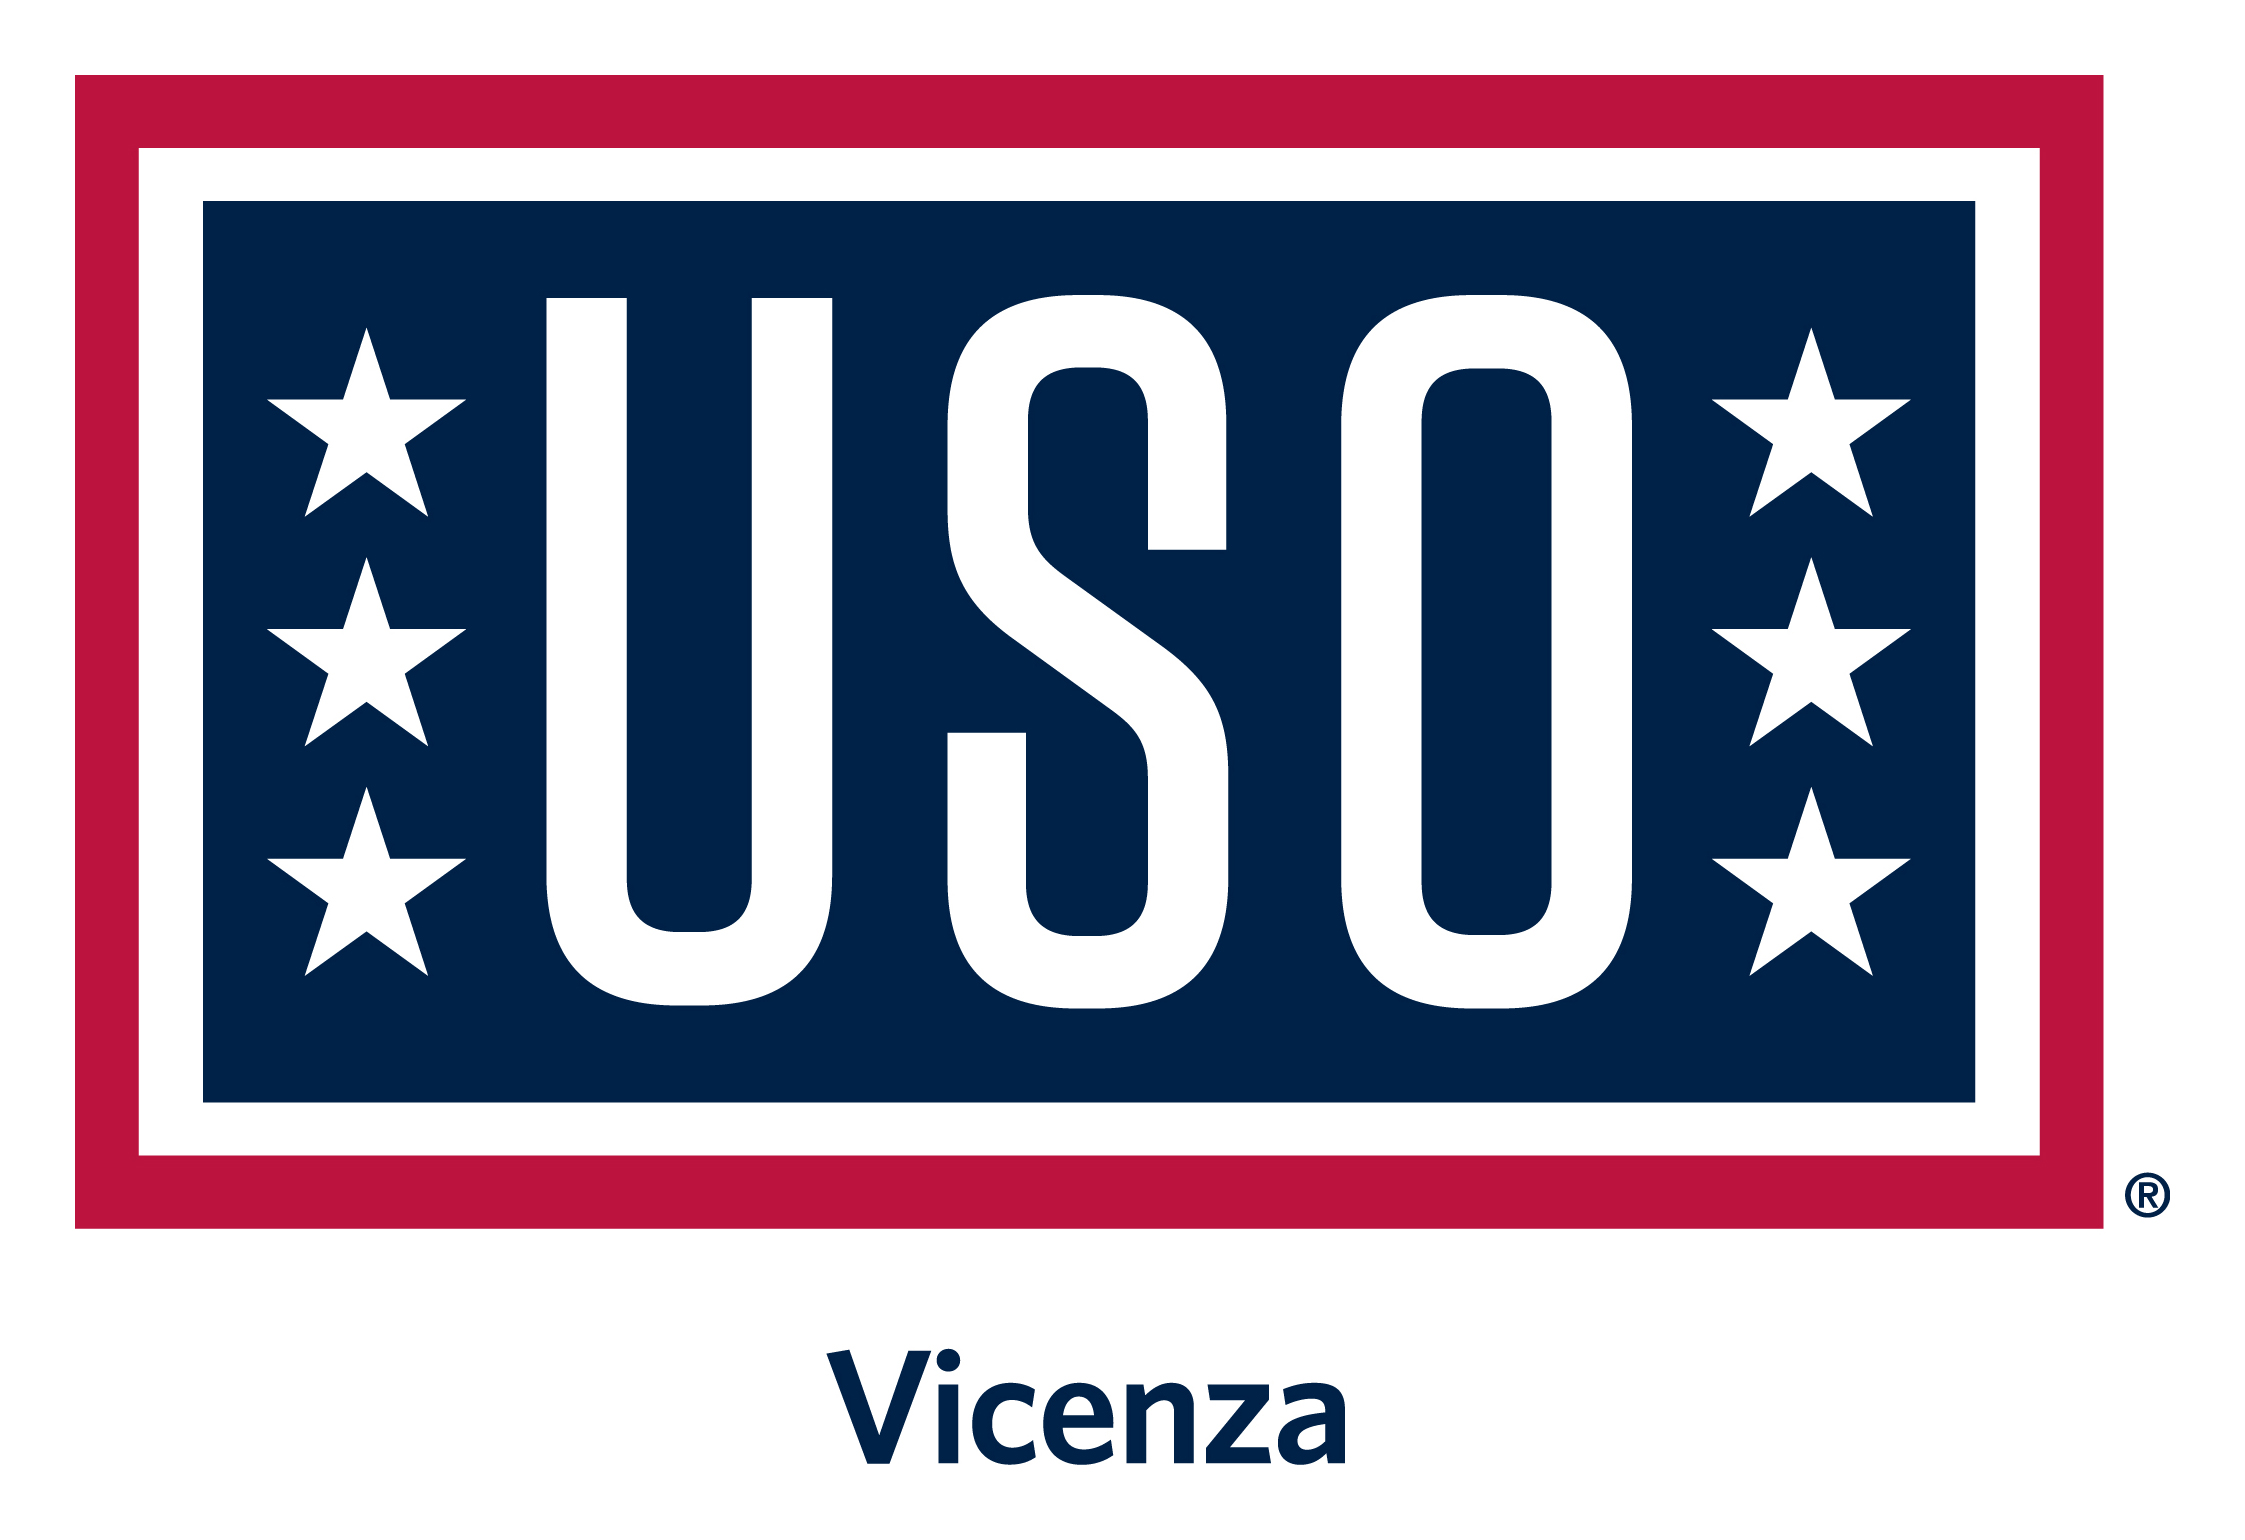 USO_VICENZA_badge_lightbg_RGB.jpg